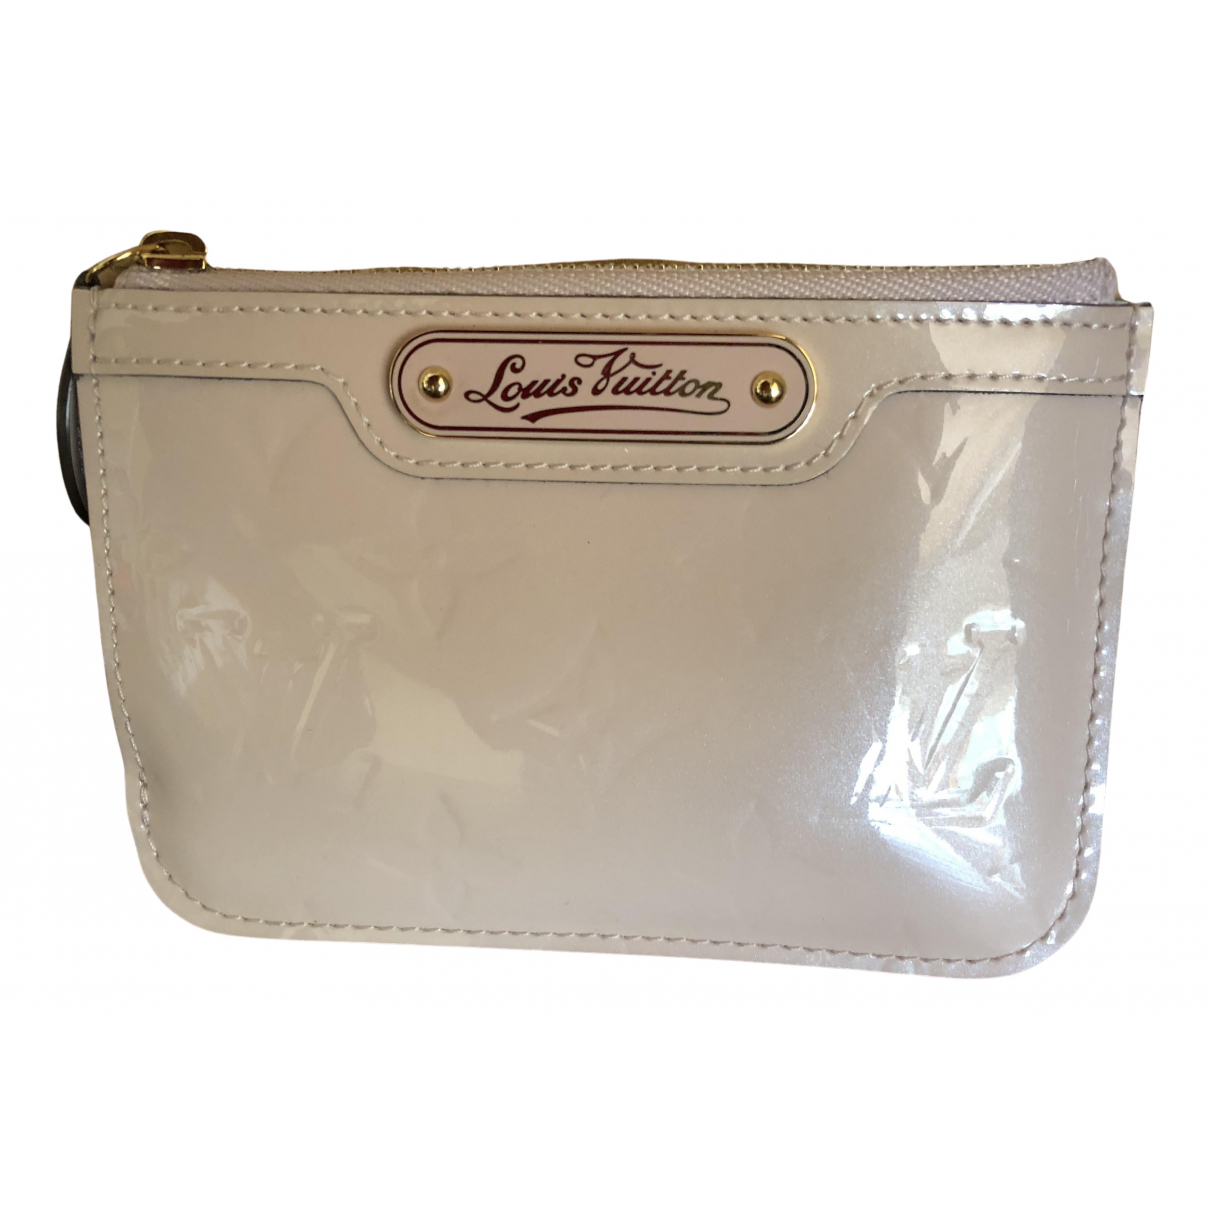 Louis Vuitton N Pink Patent leather Purses, wallet & cases for Women N